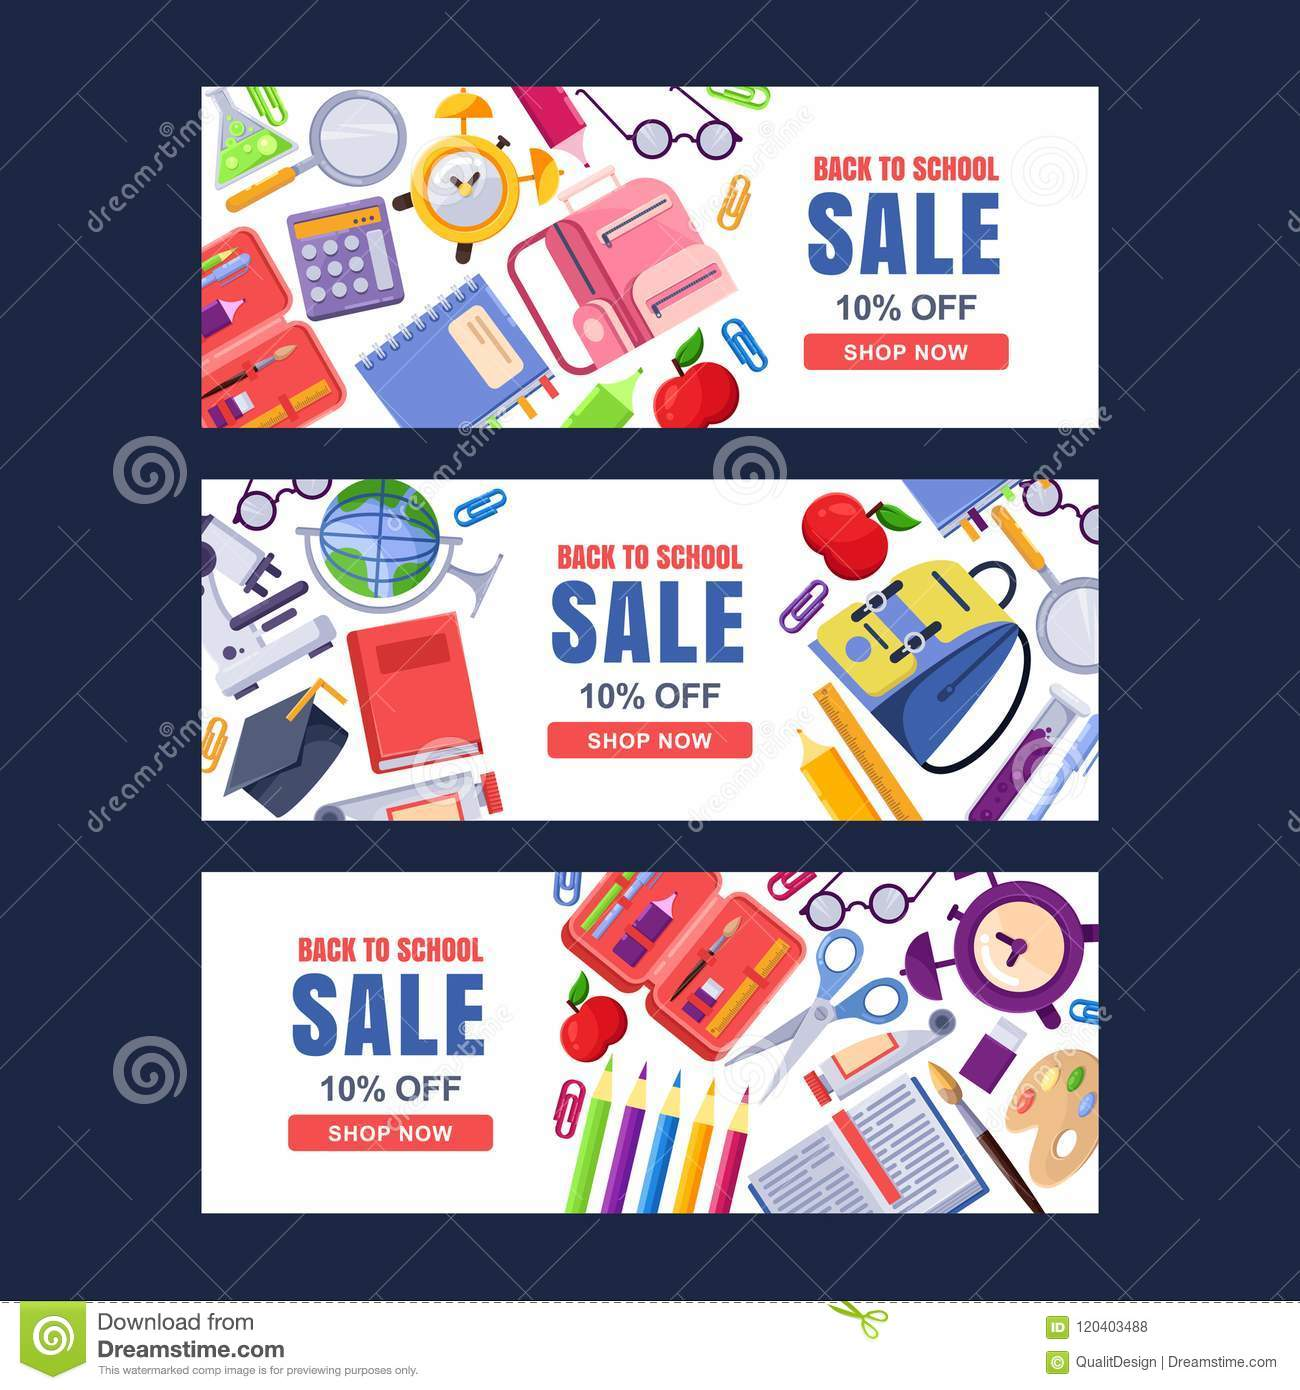 Back To School Sale Vector Banner Template Education Backgrounds Set With Stationery Supplies Stock Vector Illustration Of Book Discount 120403488